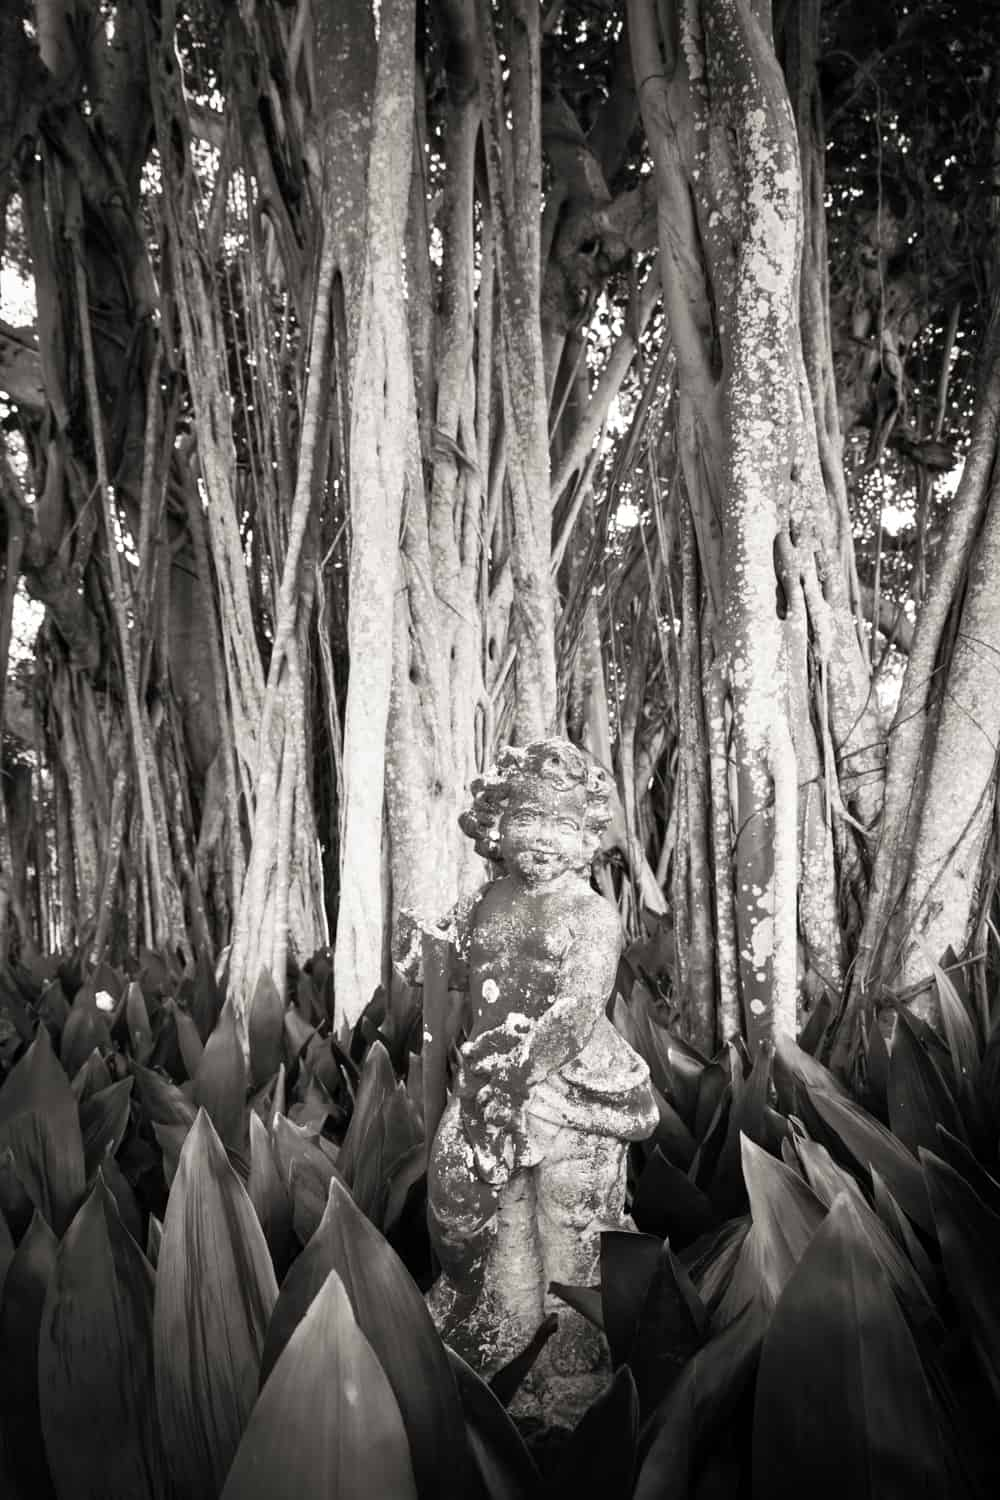 Black and white photo of statue in Ca d'Zan dwarf garden in Sarasota